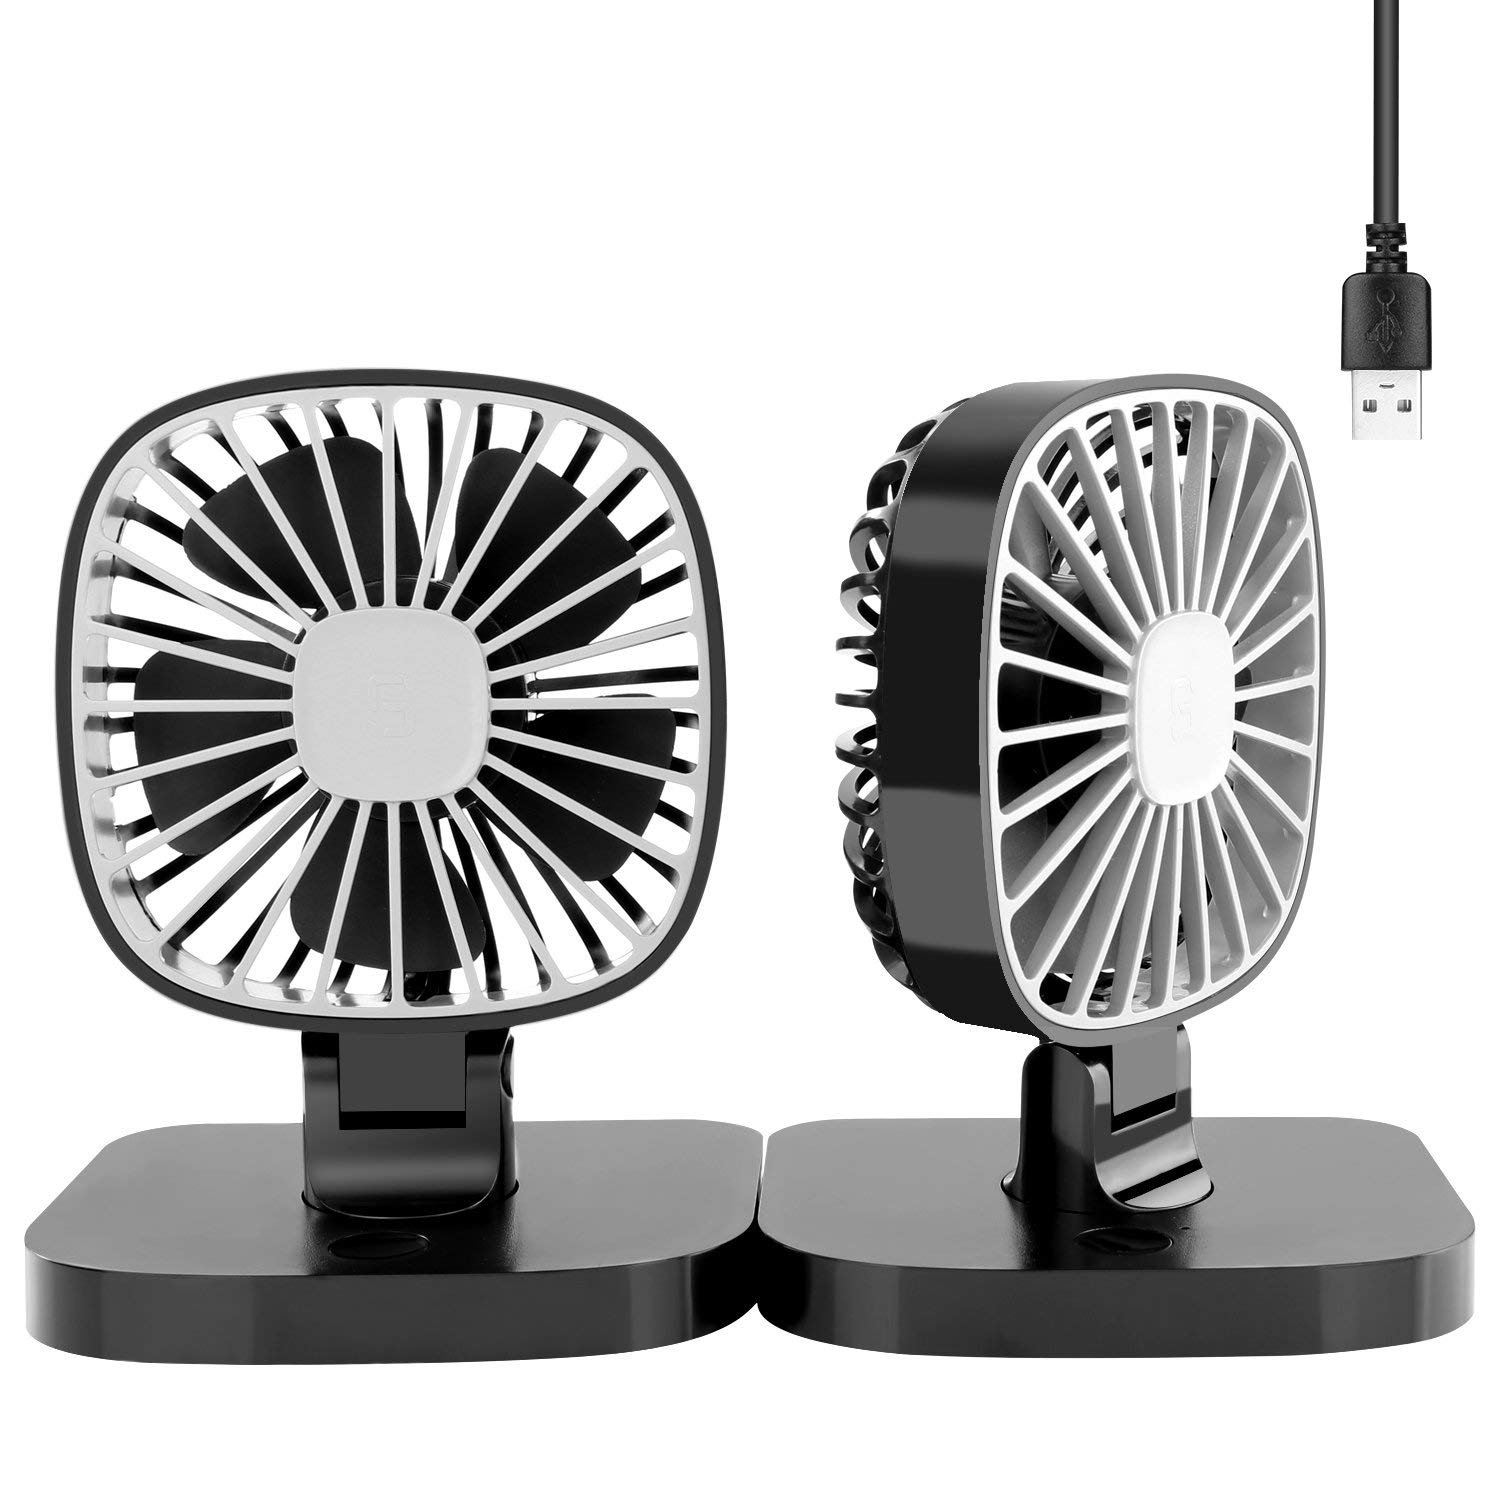 COMLIFE Dual Head USB Electric Car Fan, Rotatable Car Cooling Fan with 3 Speeds, Quiet Powerful Car Air Circulator Fan for 12V Vehicles - Effectively Blow Out Hot Air, Smoke, Odors